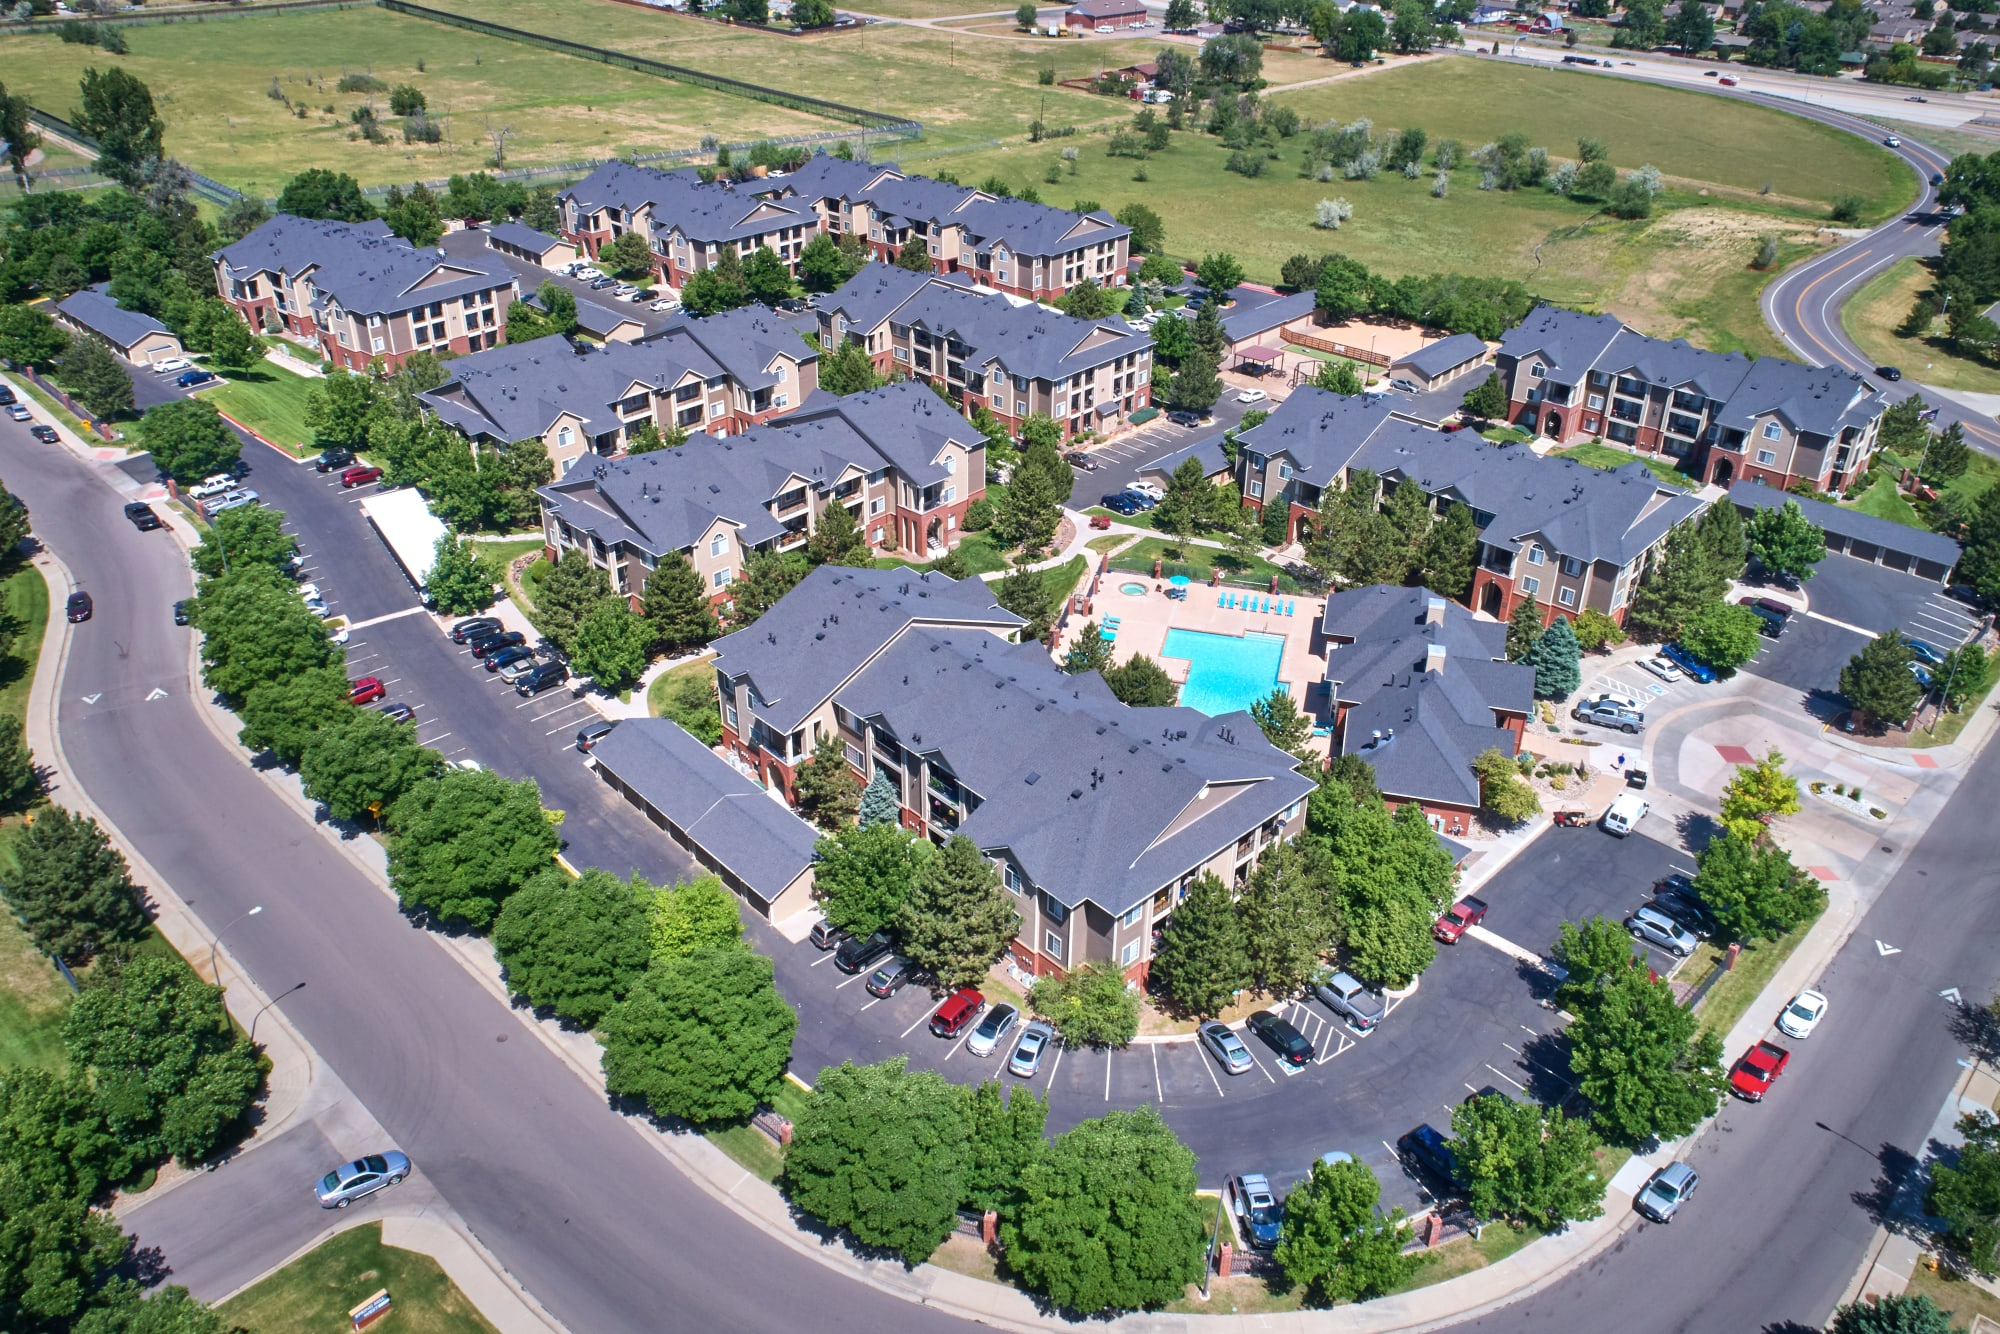 Aerial view of the property at Skyecrest Apartments in Lakewood, Colorado